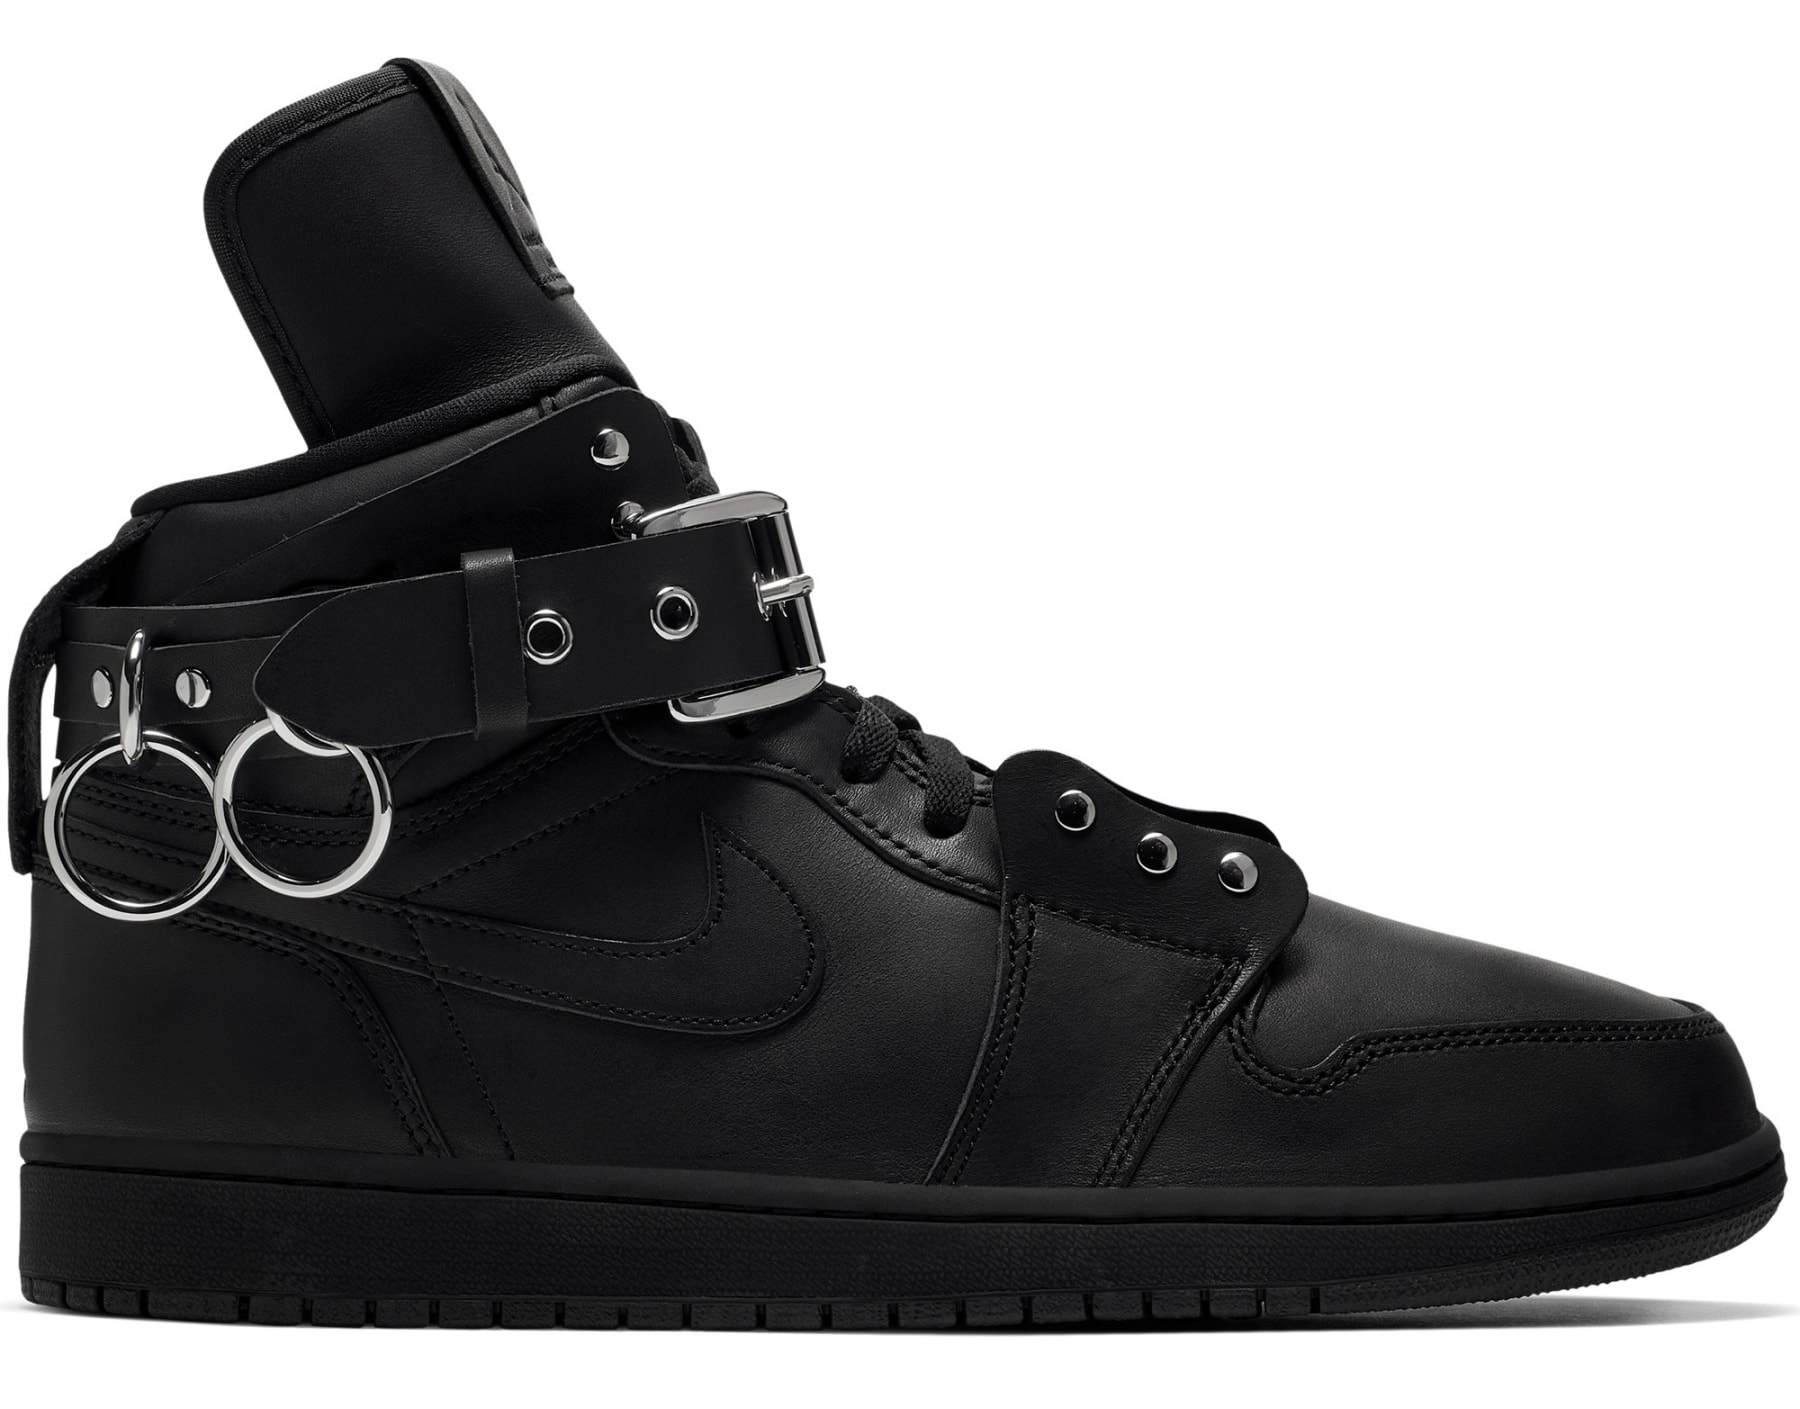 comme-des-garcons-air-jordan-1-high-black-cn5738-001-medial